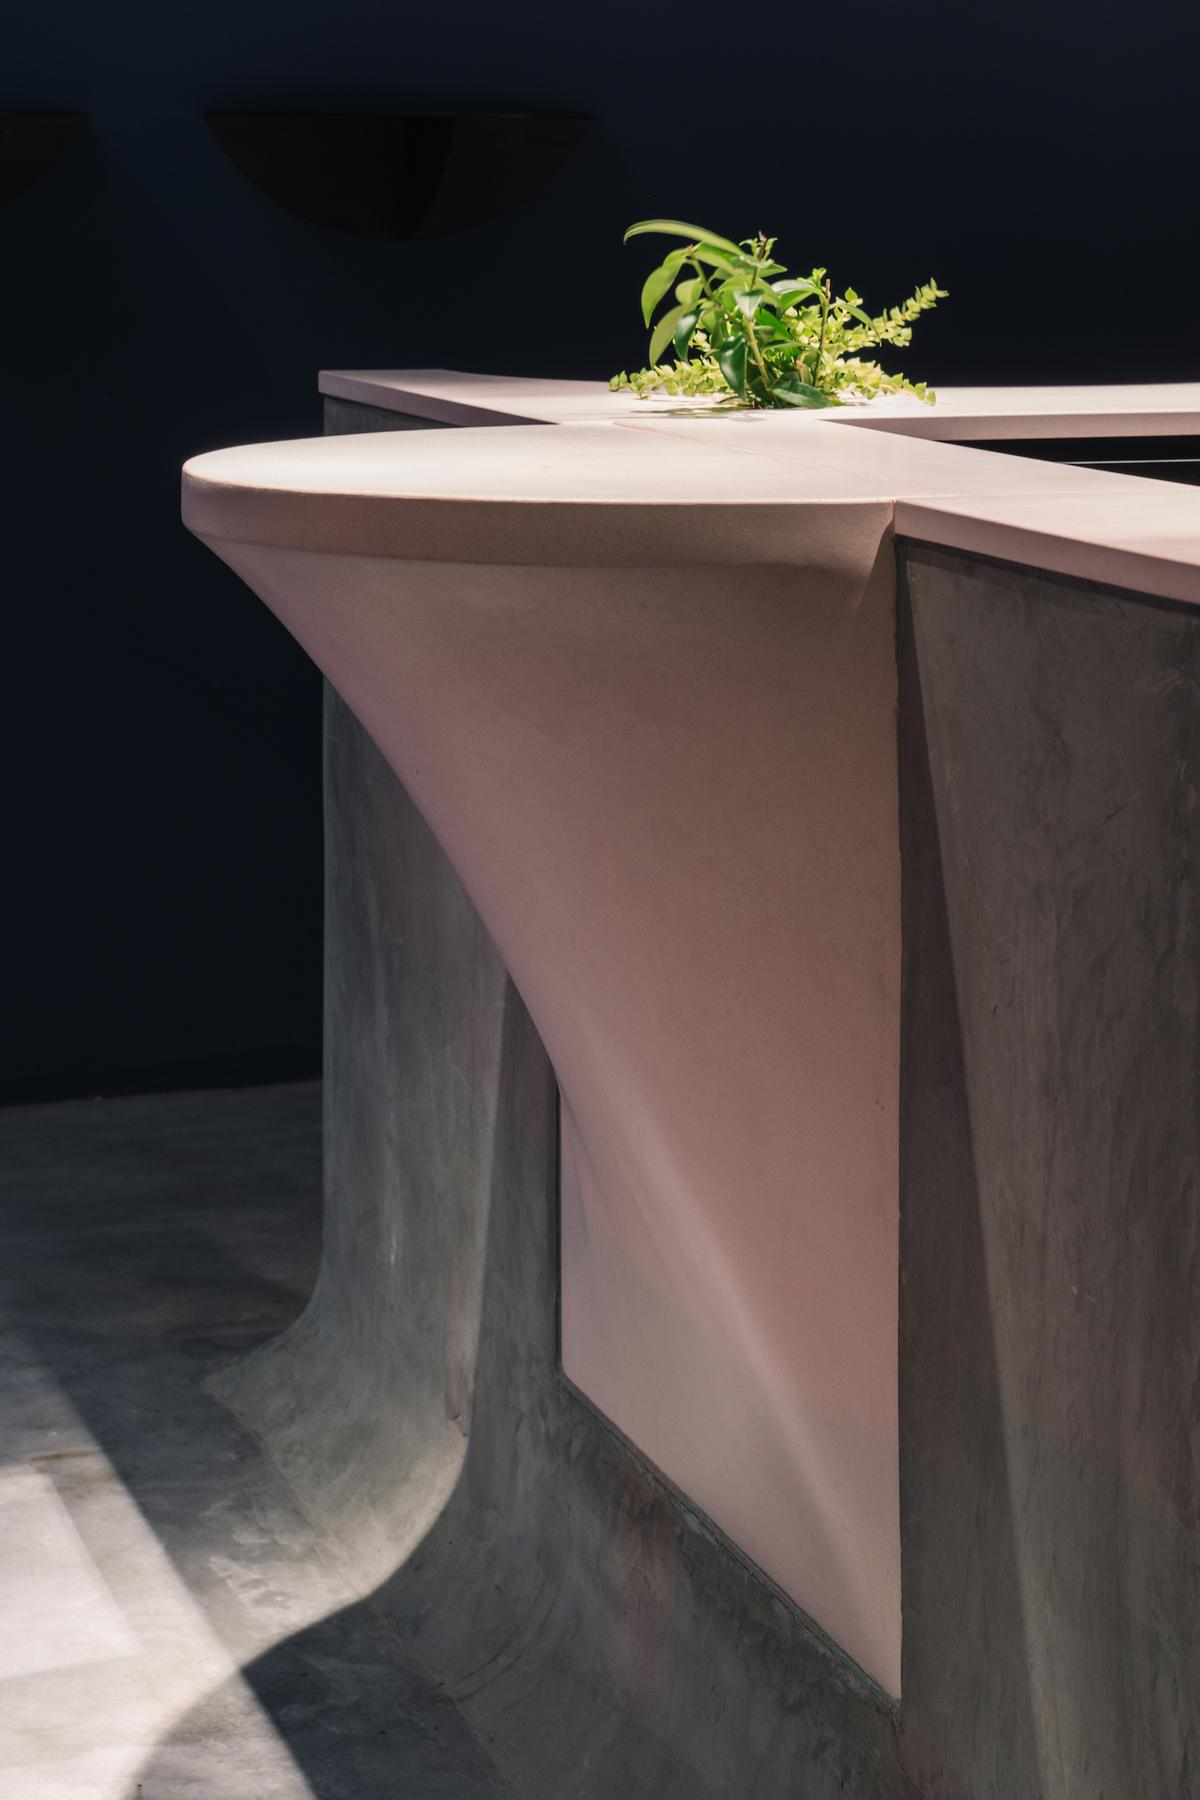 A powder pink concrete countertop was cast in 11 different sections / Khoo Guo Jie